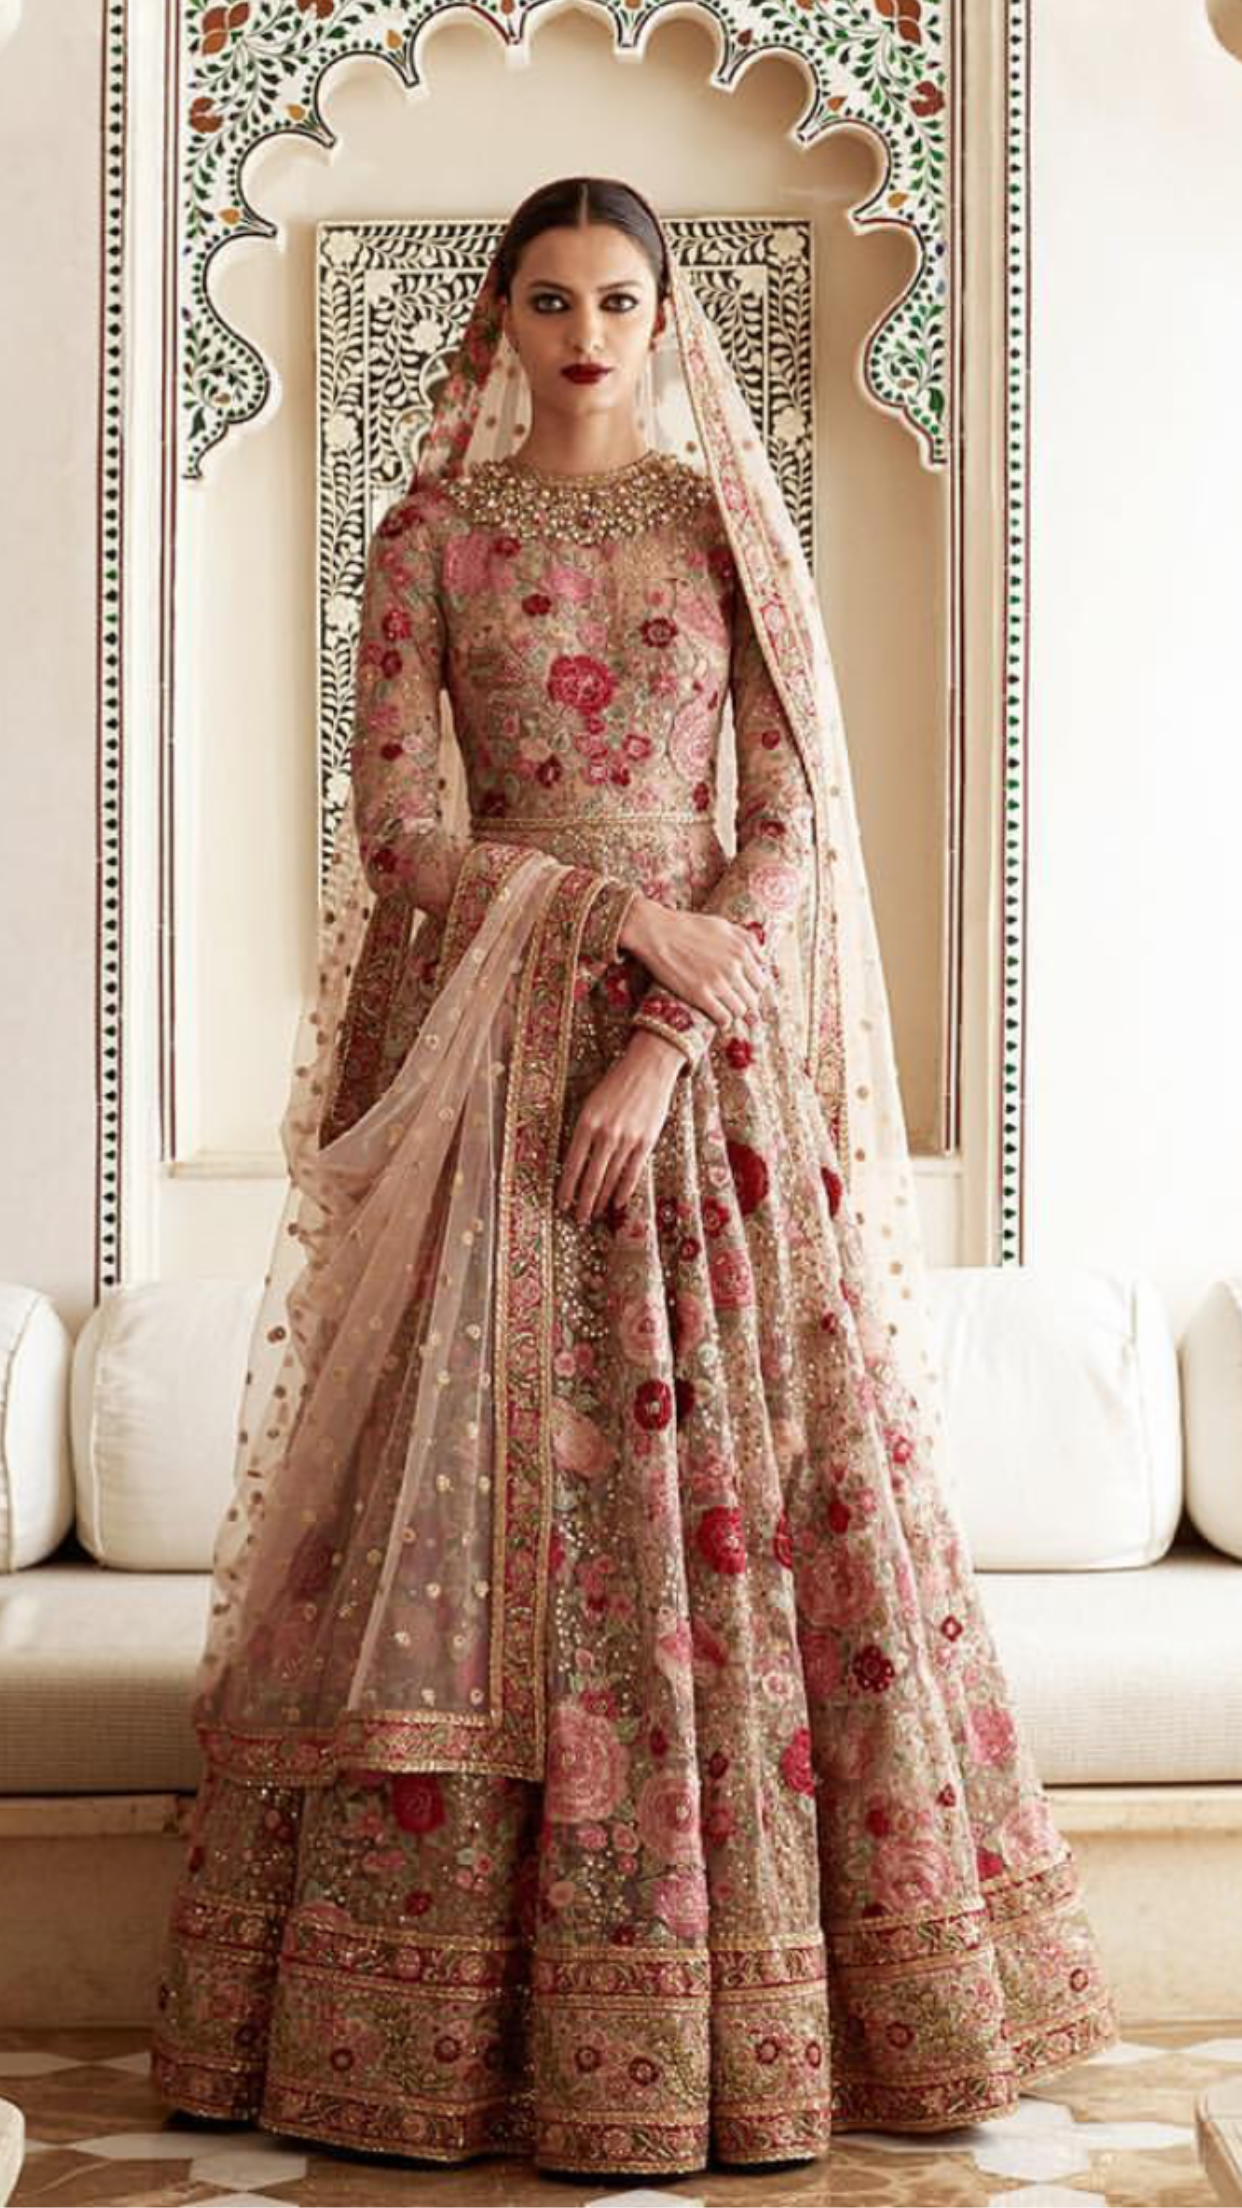 Pomegranate pink bridal lehenga bridal lehengas for Indian wedding dresses online india